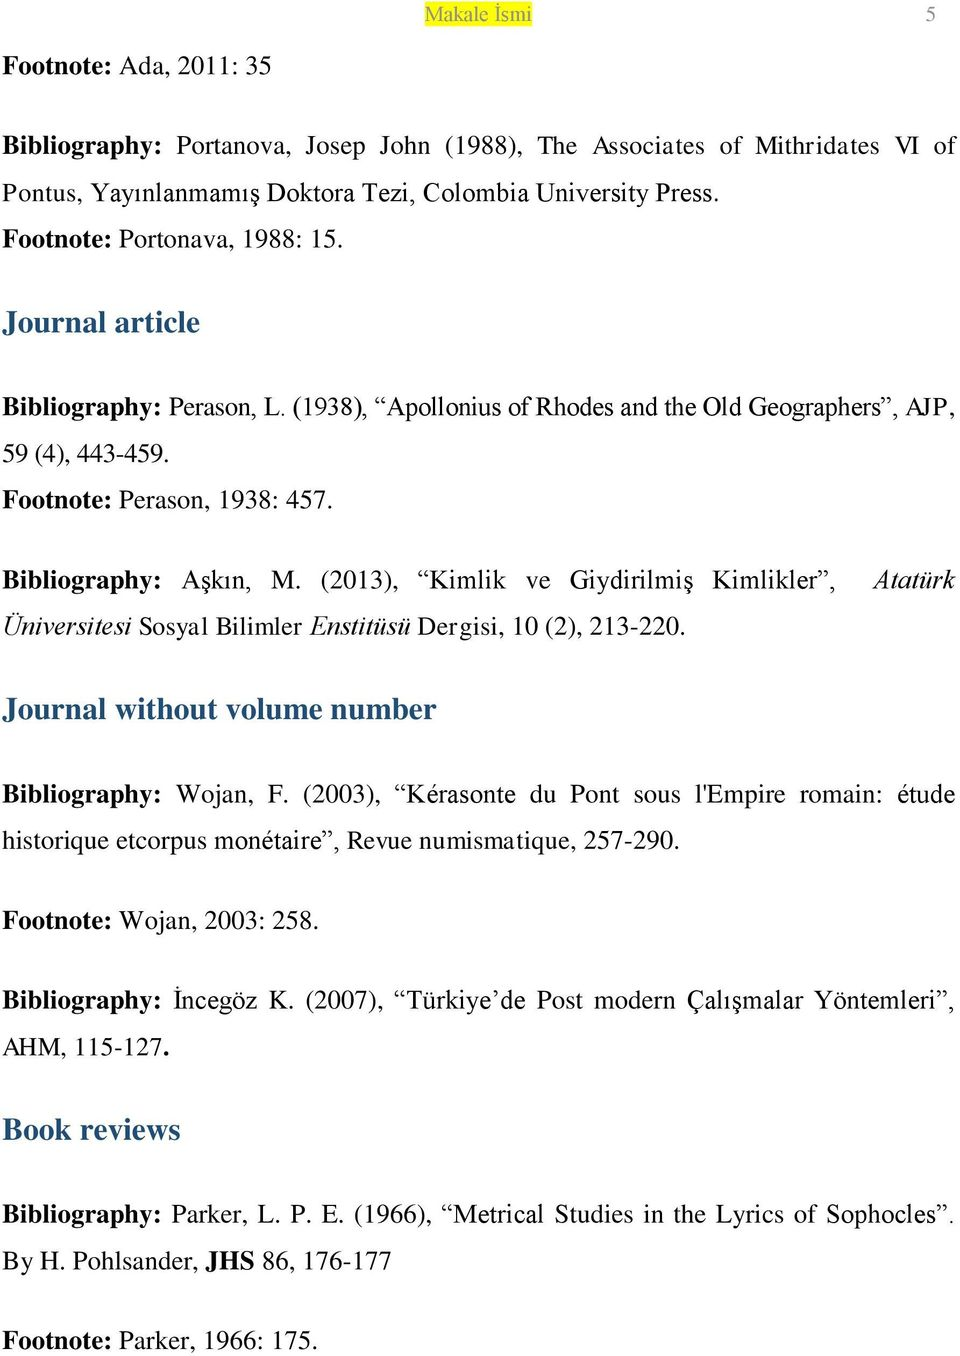 Bibliography: Aşkın, M. (2013), Kimlik ve Giydirilmiş Kimlikler, Üniversitesi Sosyal Bilimler Enstitüsü Dergisi, 10 (2), 213-220. Atatürk Journal without volume number Bibliography: Wojan, F.